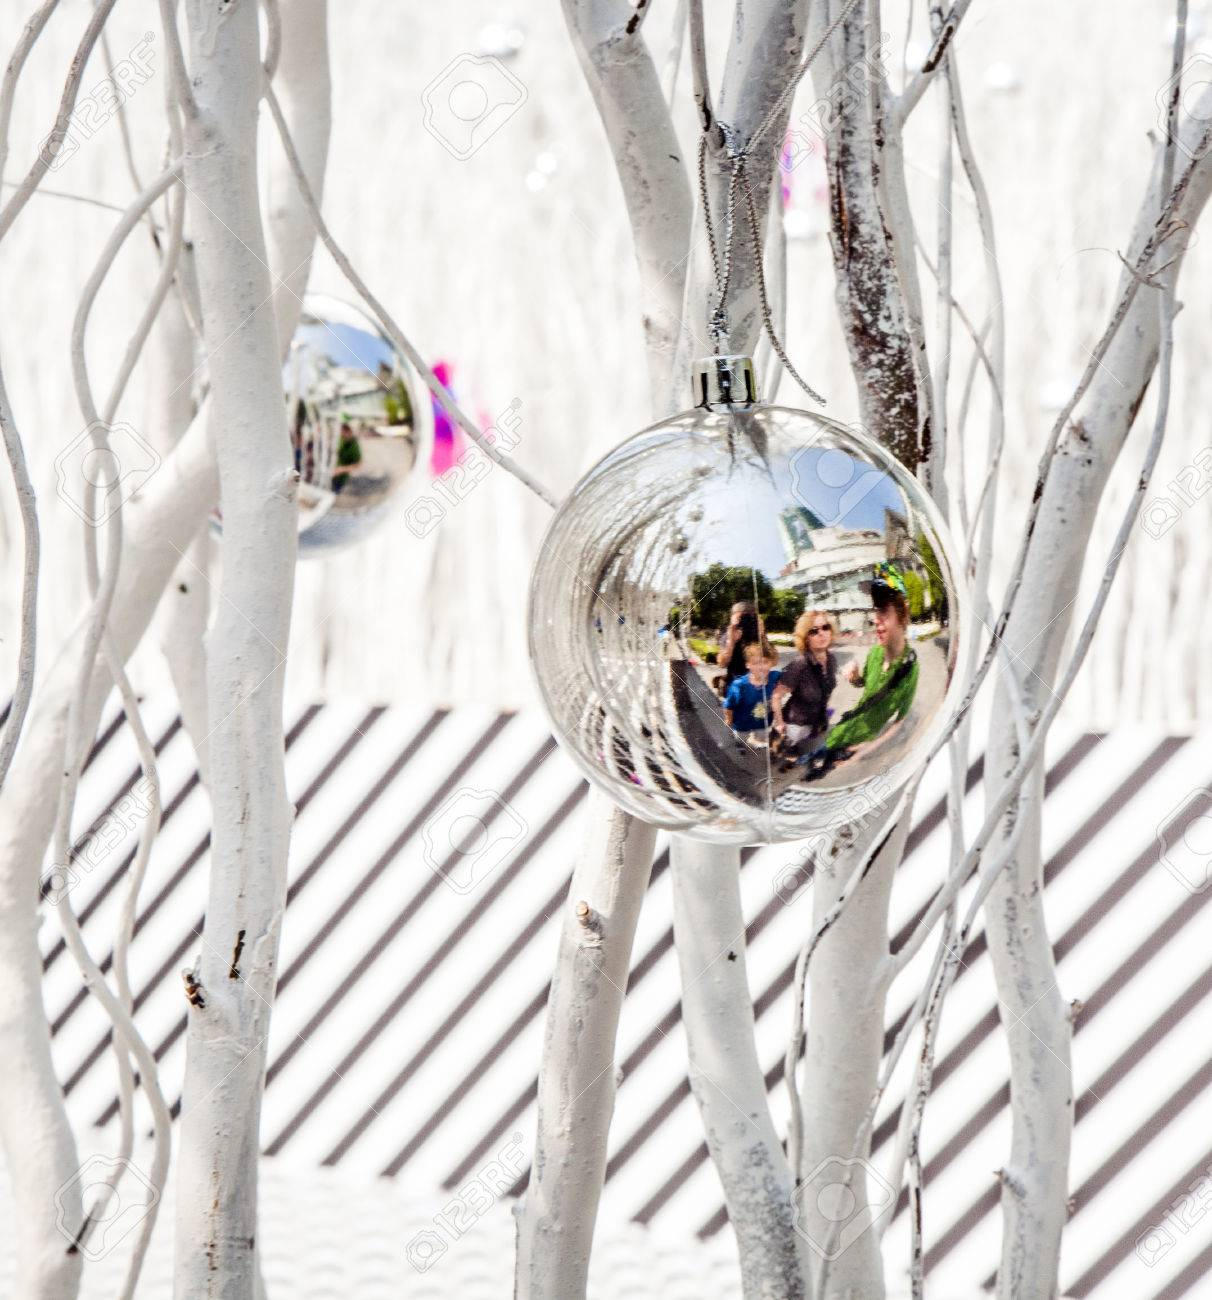 White Painted Branches Give A Harmonic Background With Chrismas Stock Photo Picture And Royalty Free Image Image 29826580